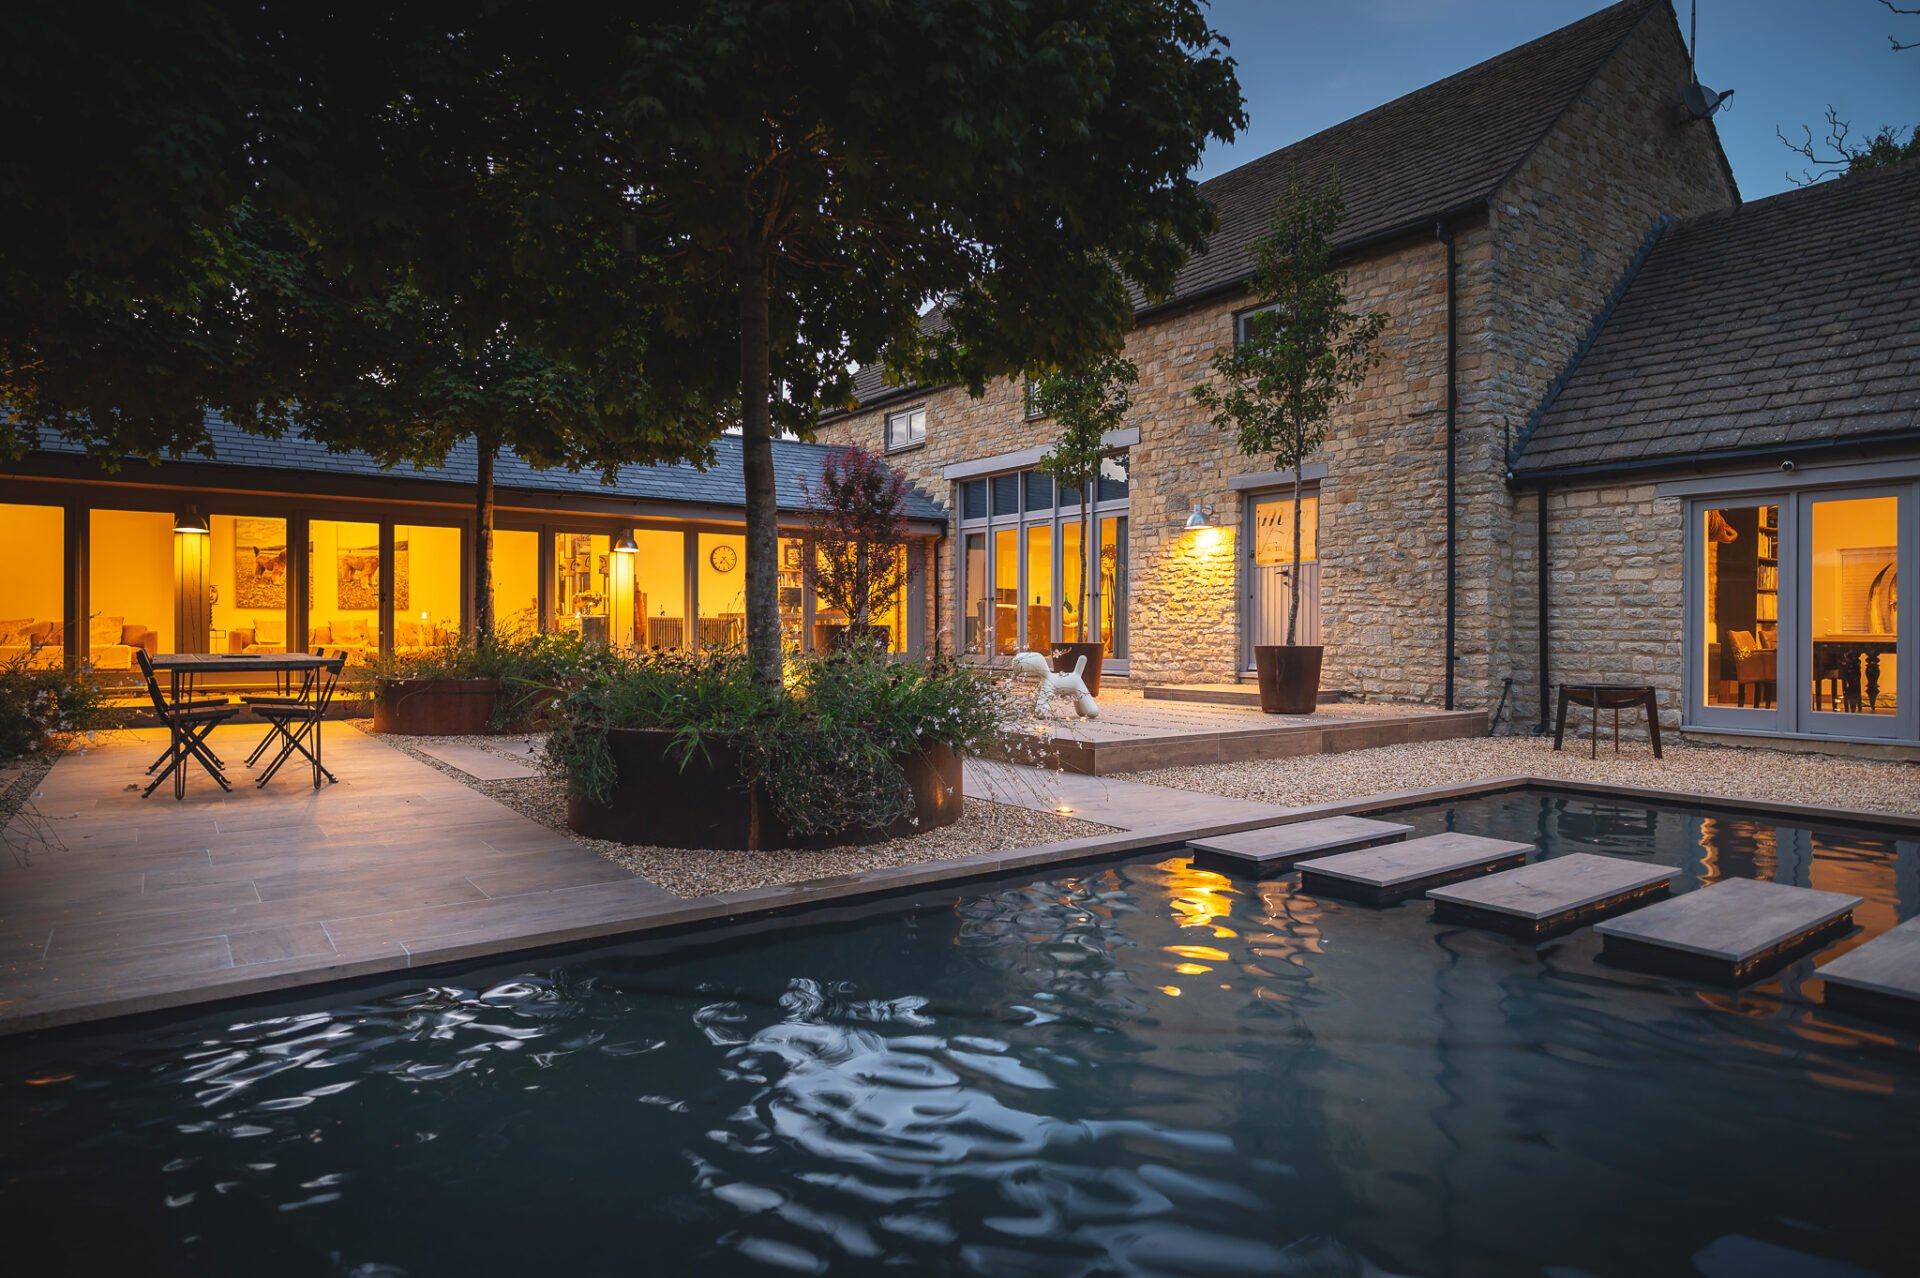 Cotswold stone barn conversion with courtyard by Jo Alderson Phillips